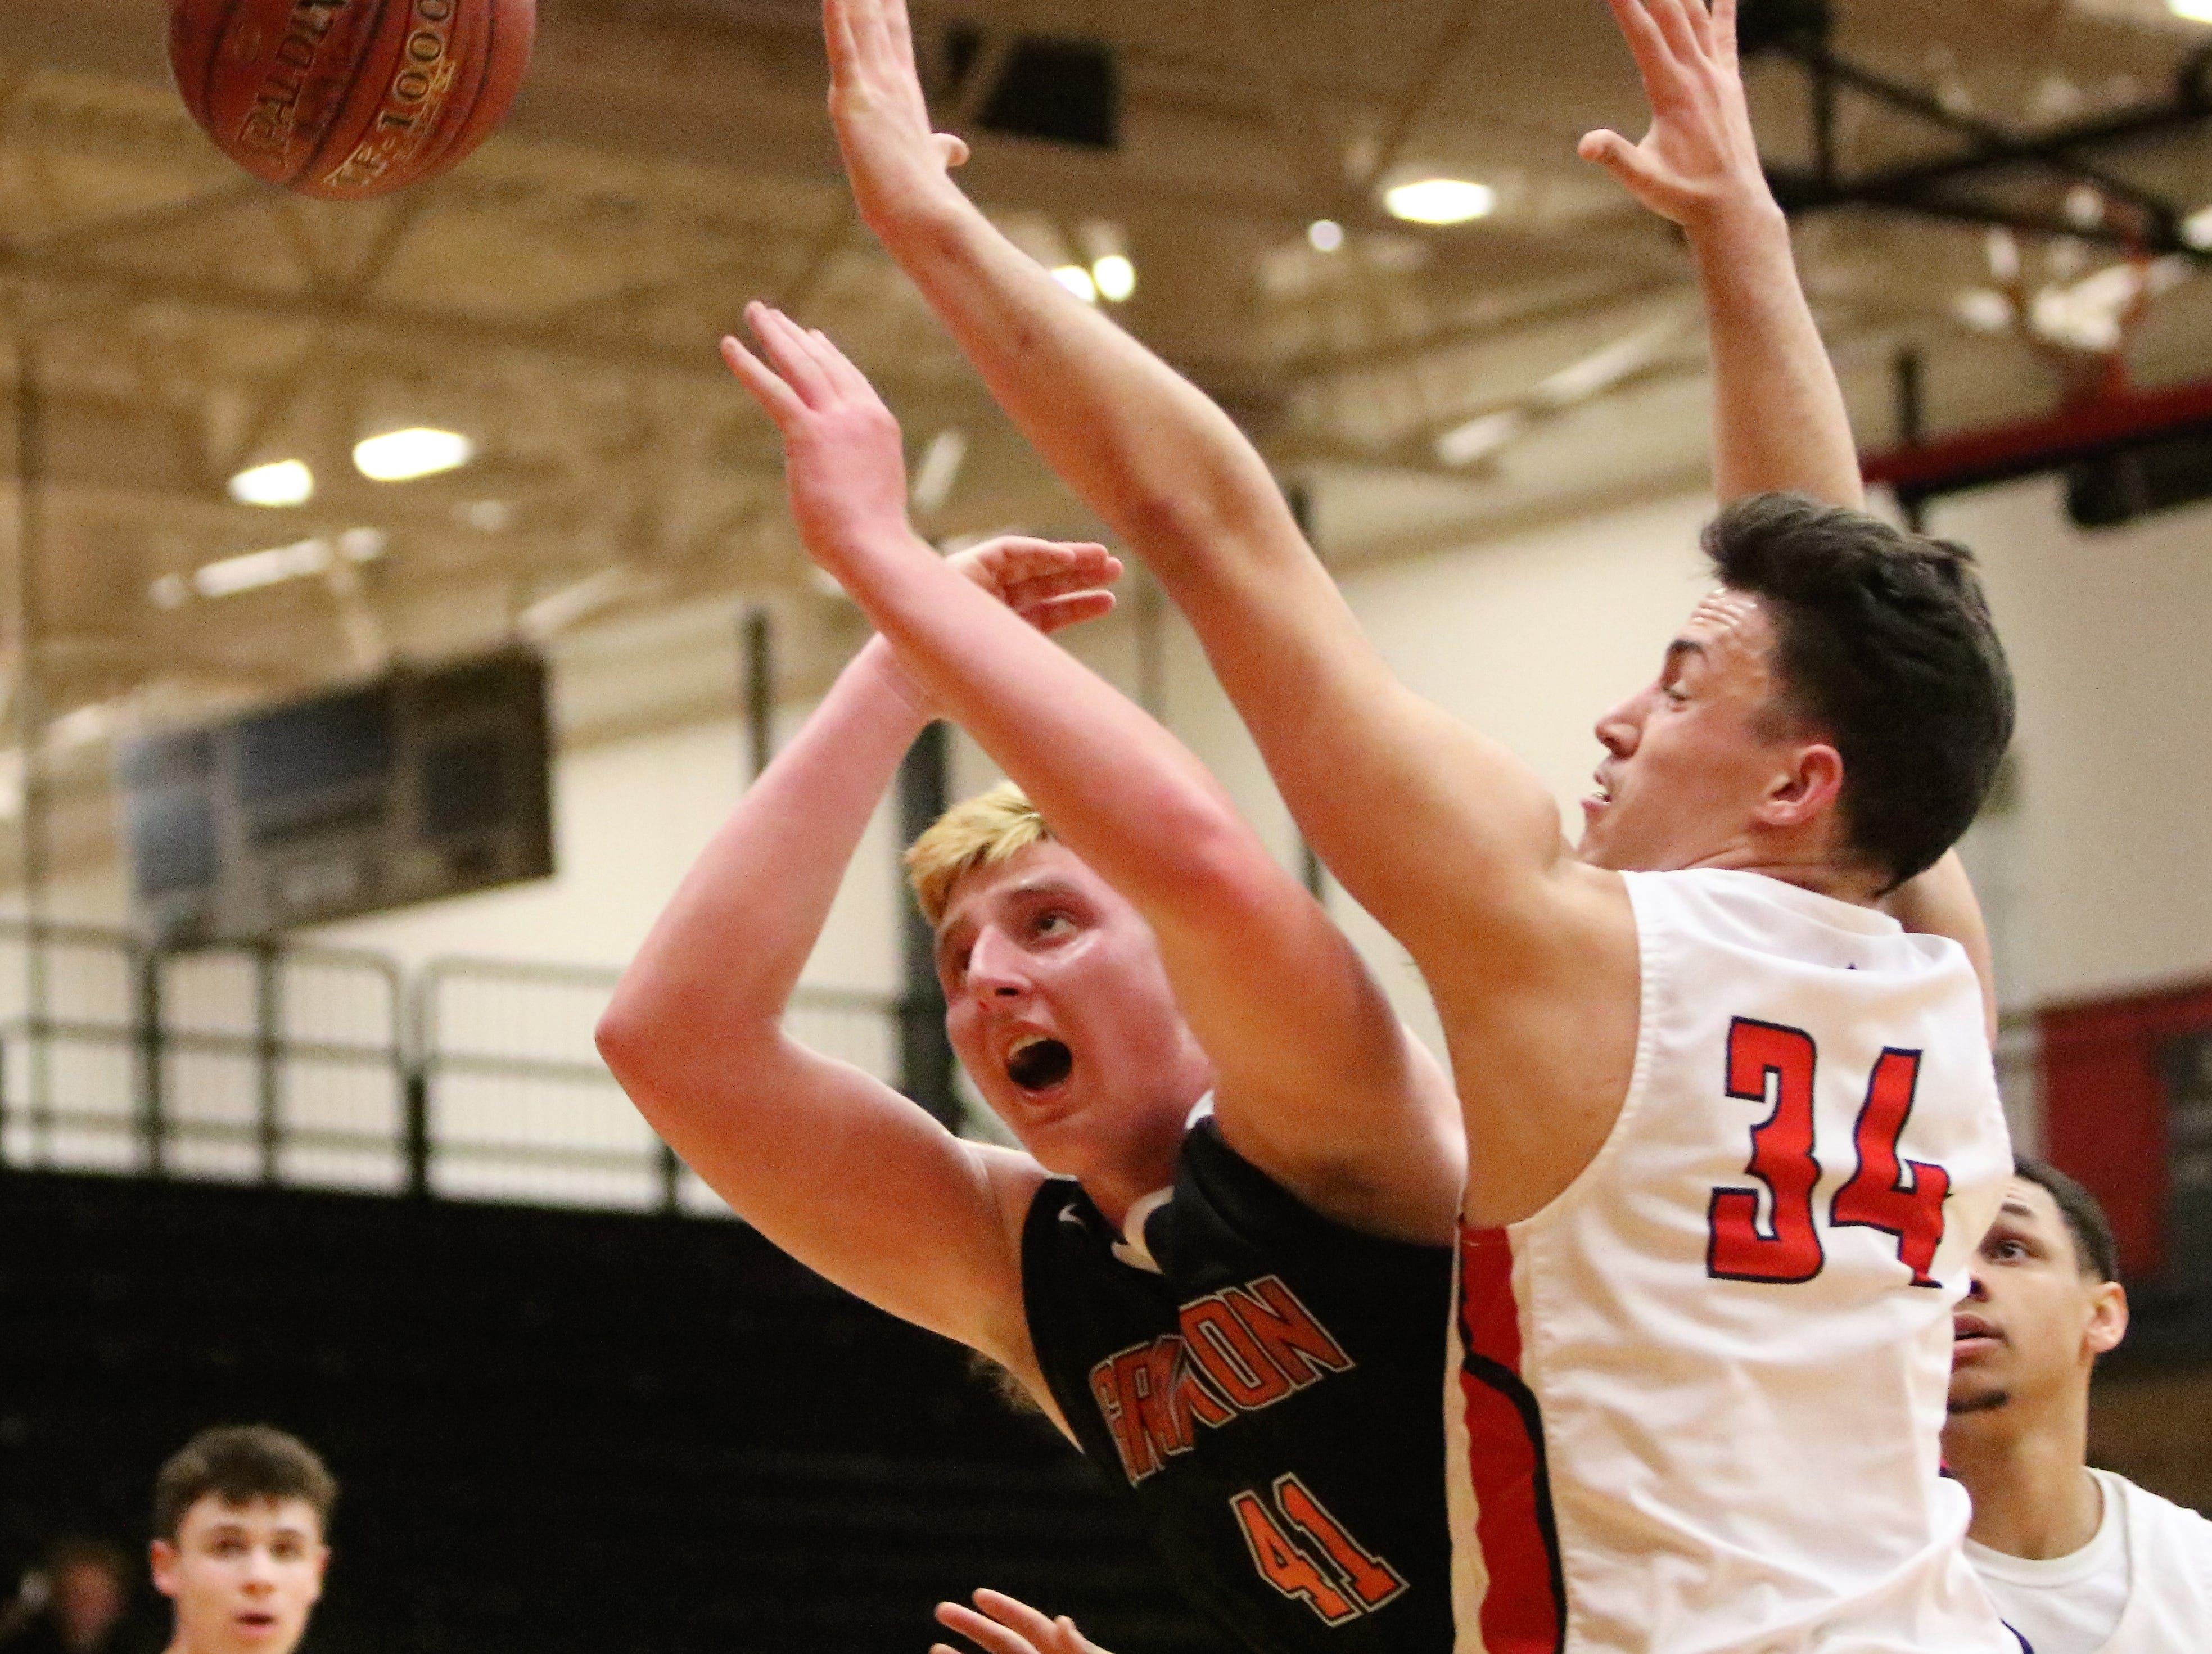 Grafton forward JP Benzschawel loses the ball while going up for a shot against the defense of South Milwaukee forward Luis Ortiz on Jan. 22, 2019.